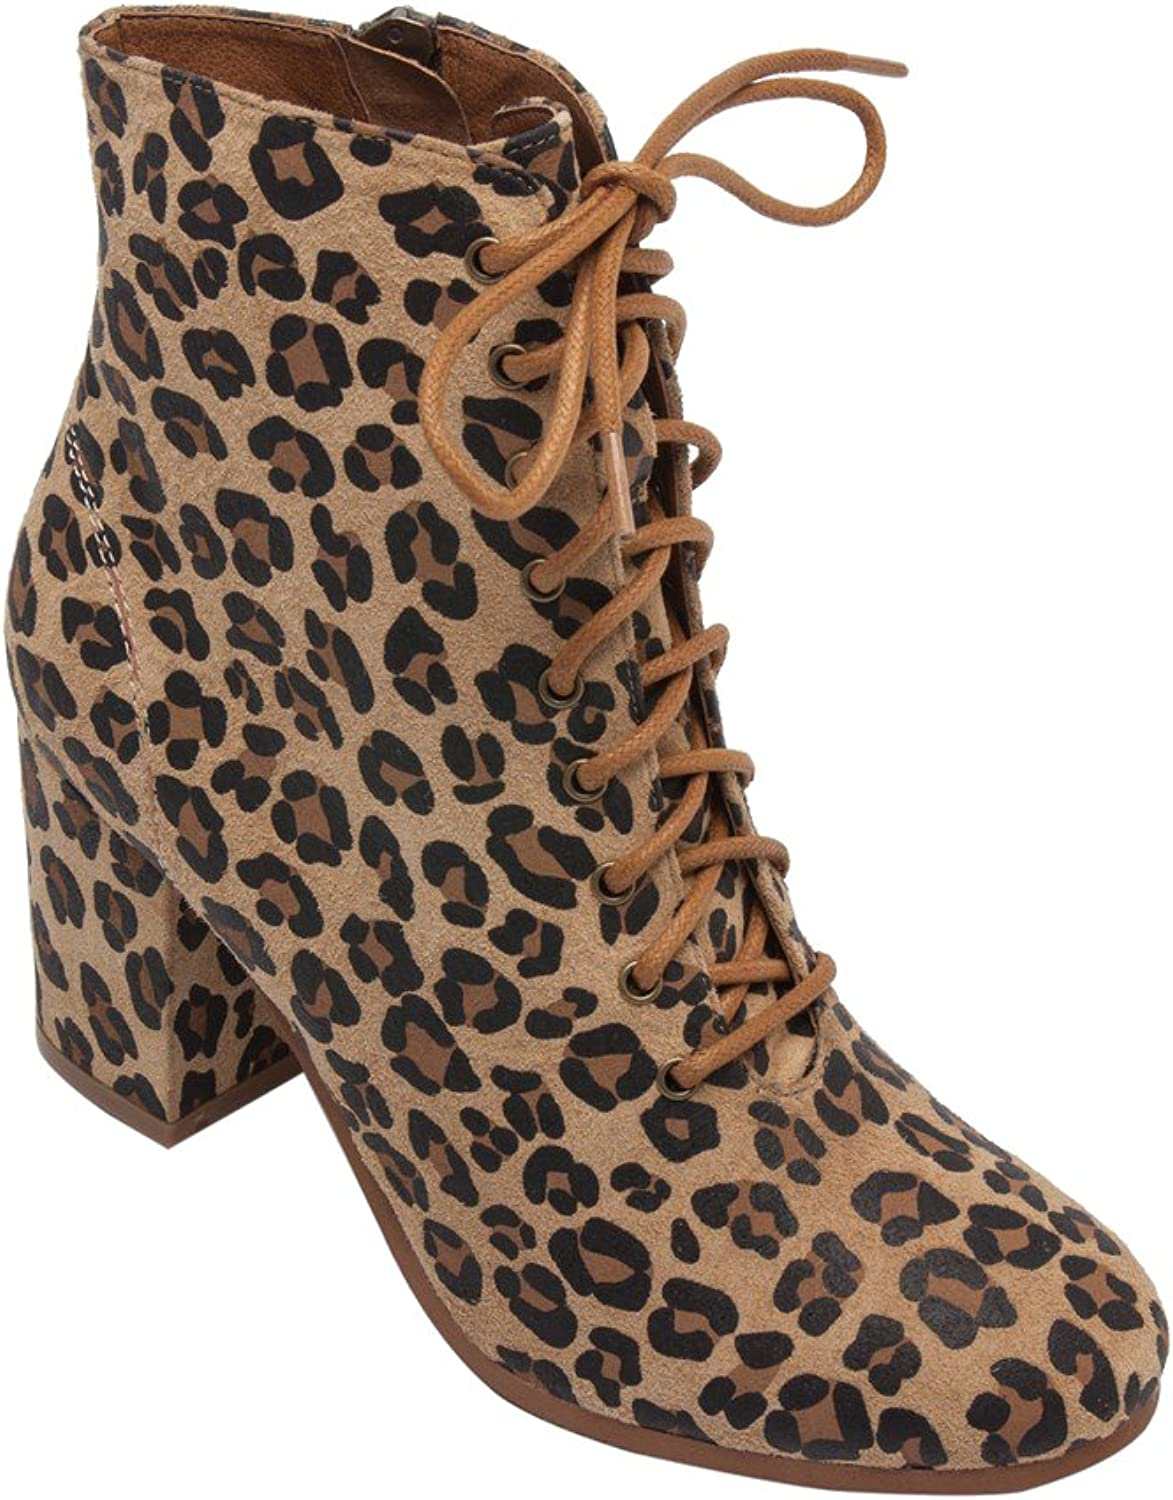 PIC PAY Benji - Women's Lace-Up Vintage Zipper Boot - Mid Height Wrapped Suede Leather Block Heel Ankle Bootie Tan Black Leopard Suede 8M